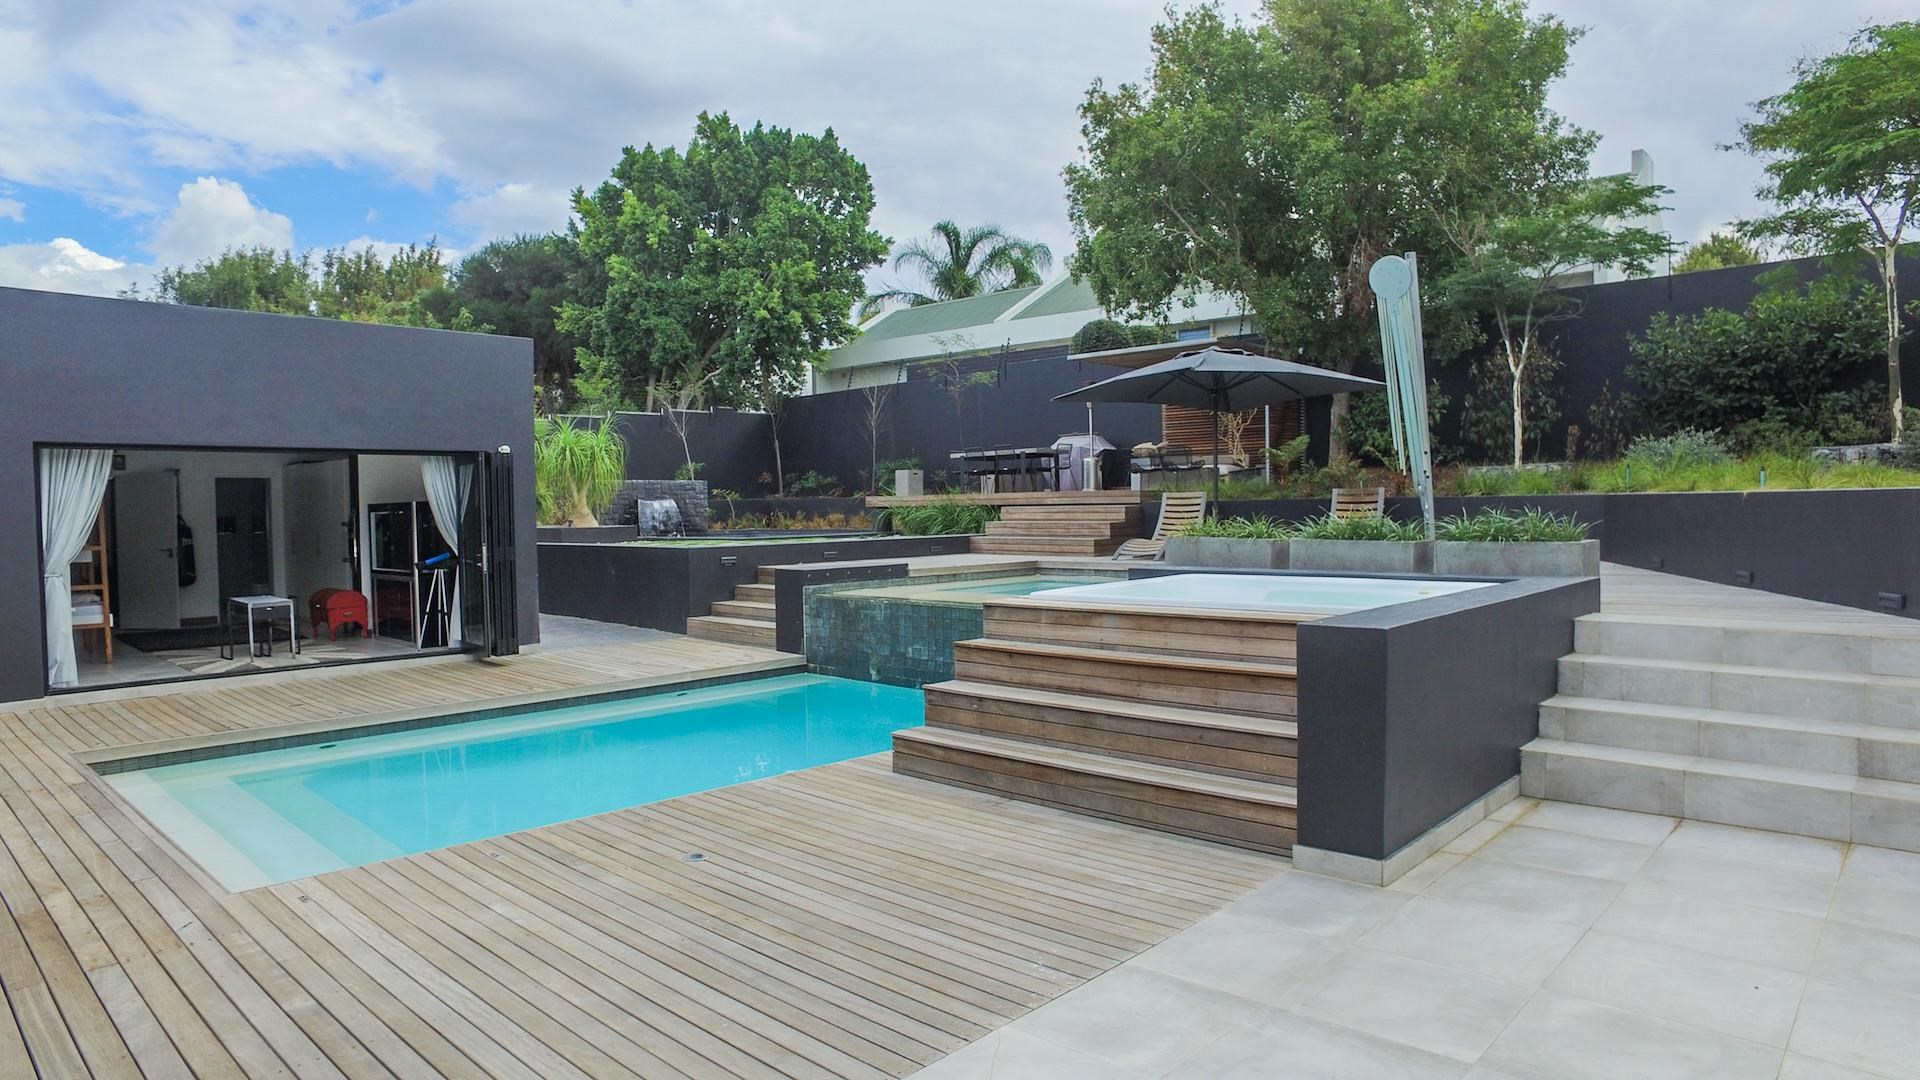 3 Bedroom House for Sale in Sonstraal